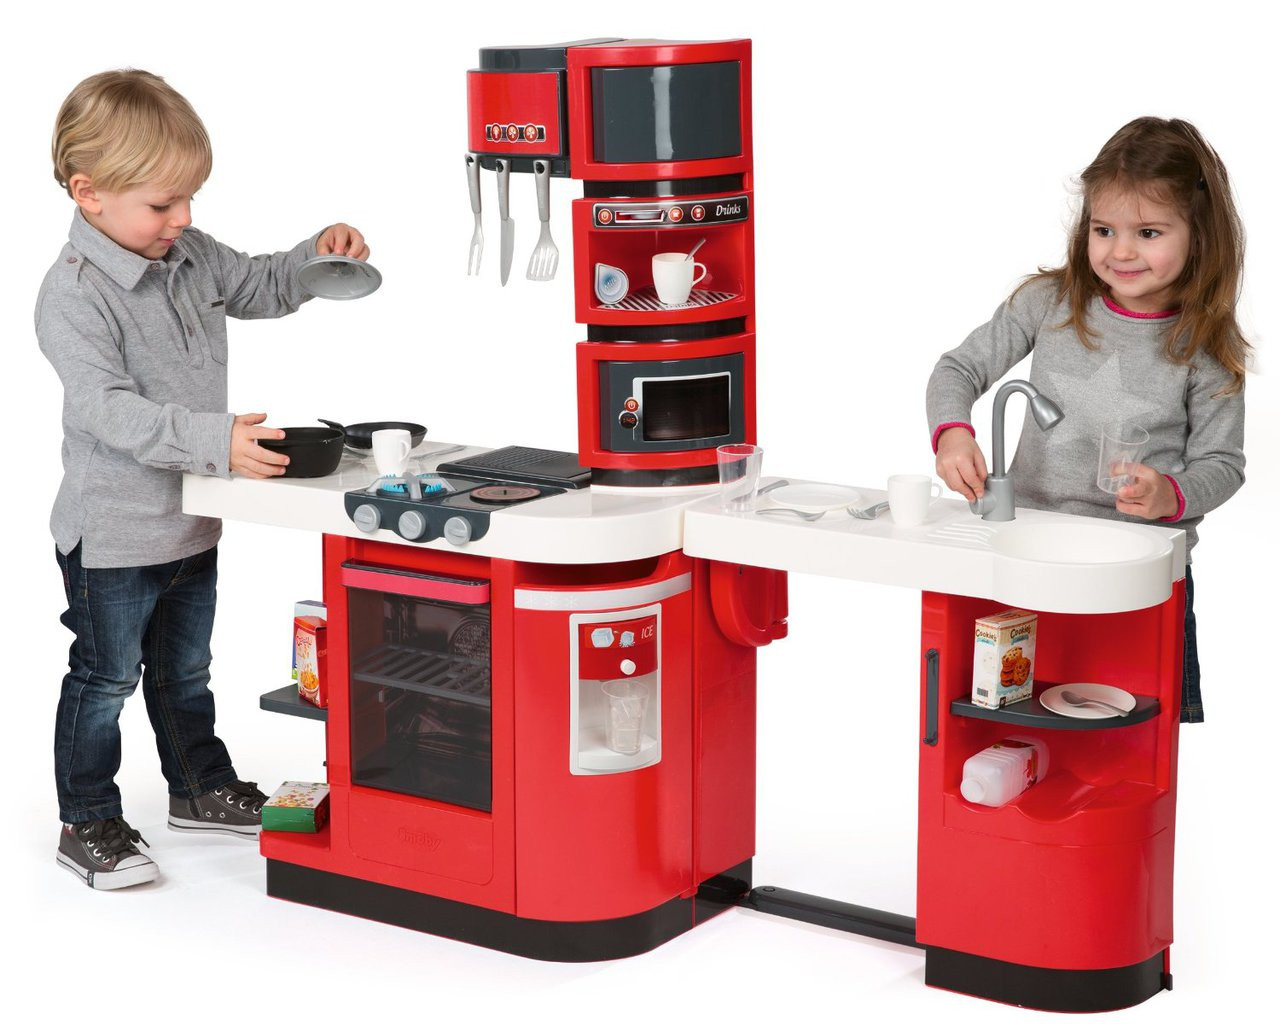 Smoby Cuisine Cook Master Kids Kitchen Play Set (311100) -> Kuchnia Little Tikes Czerwona